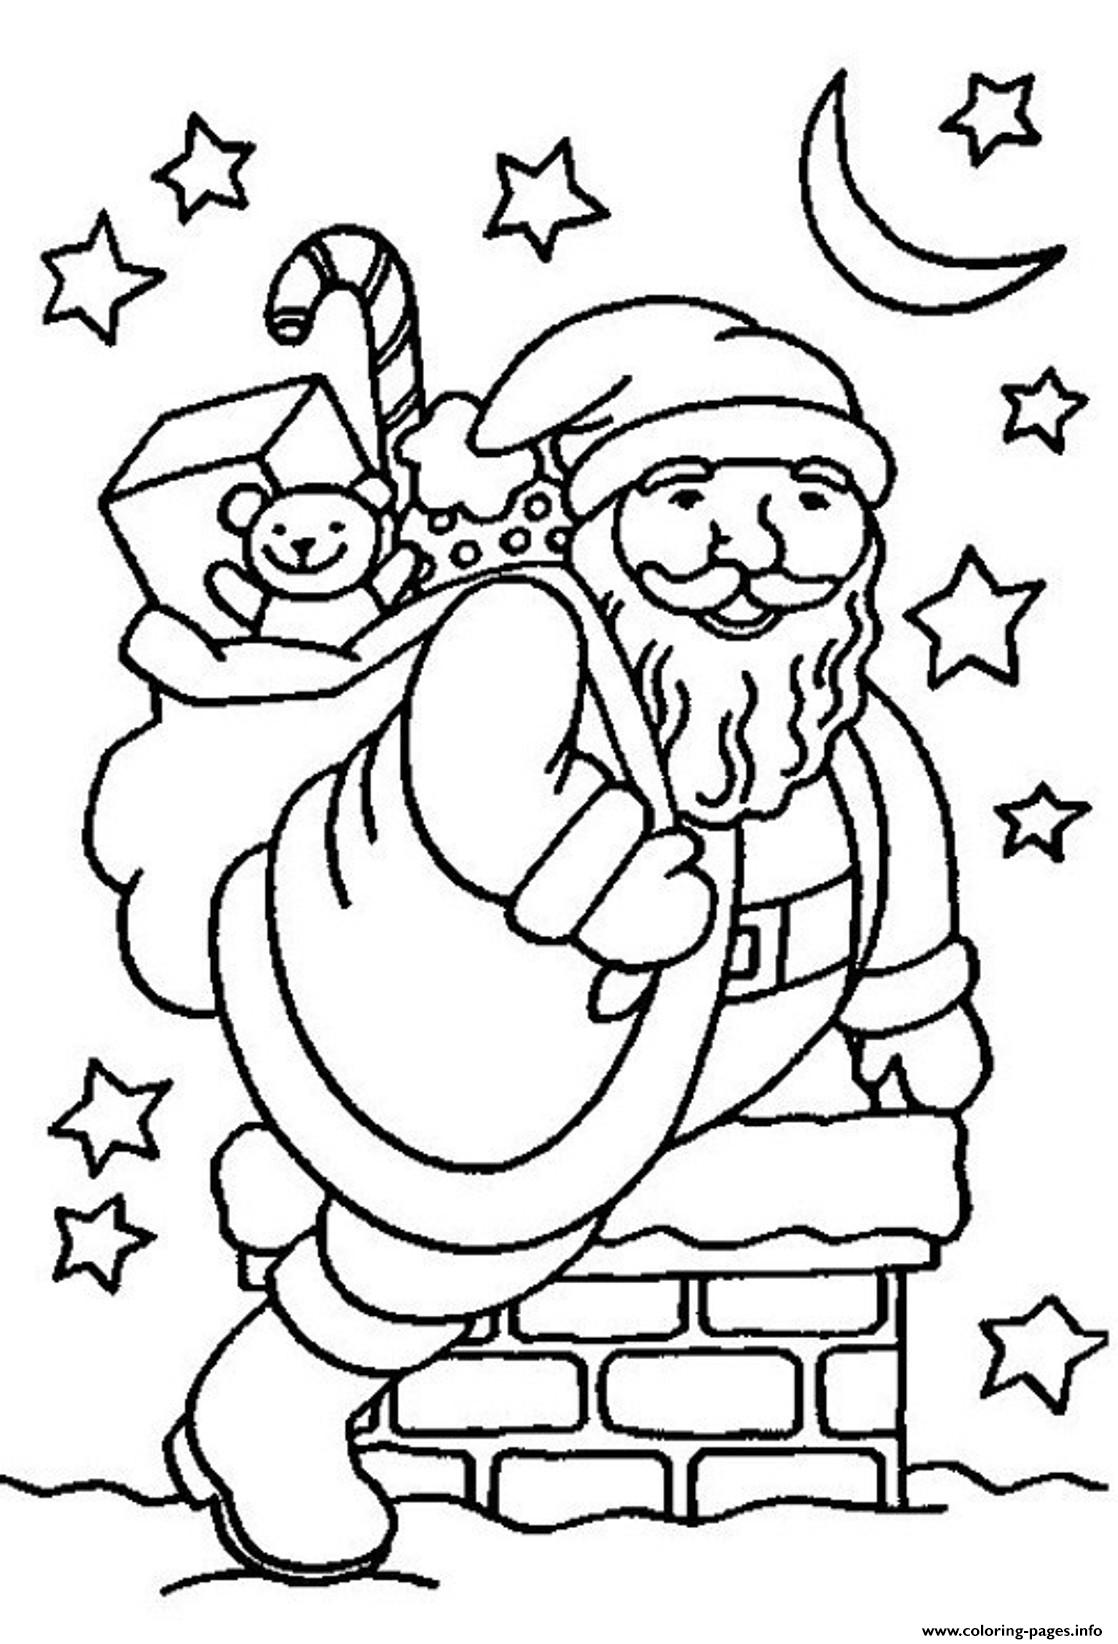 into pit santa 0a24 coloring pages printable